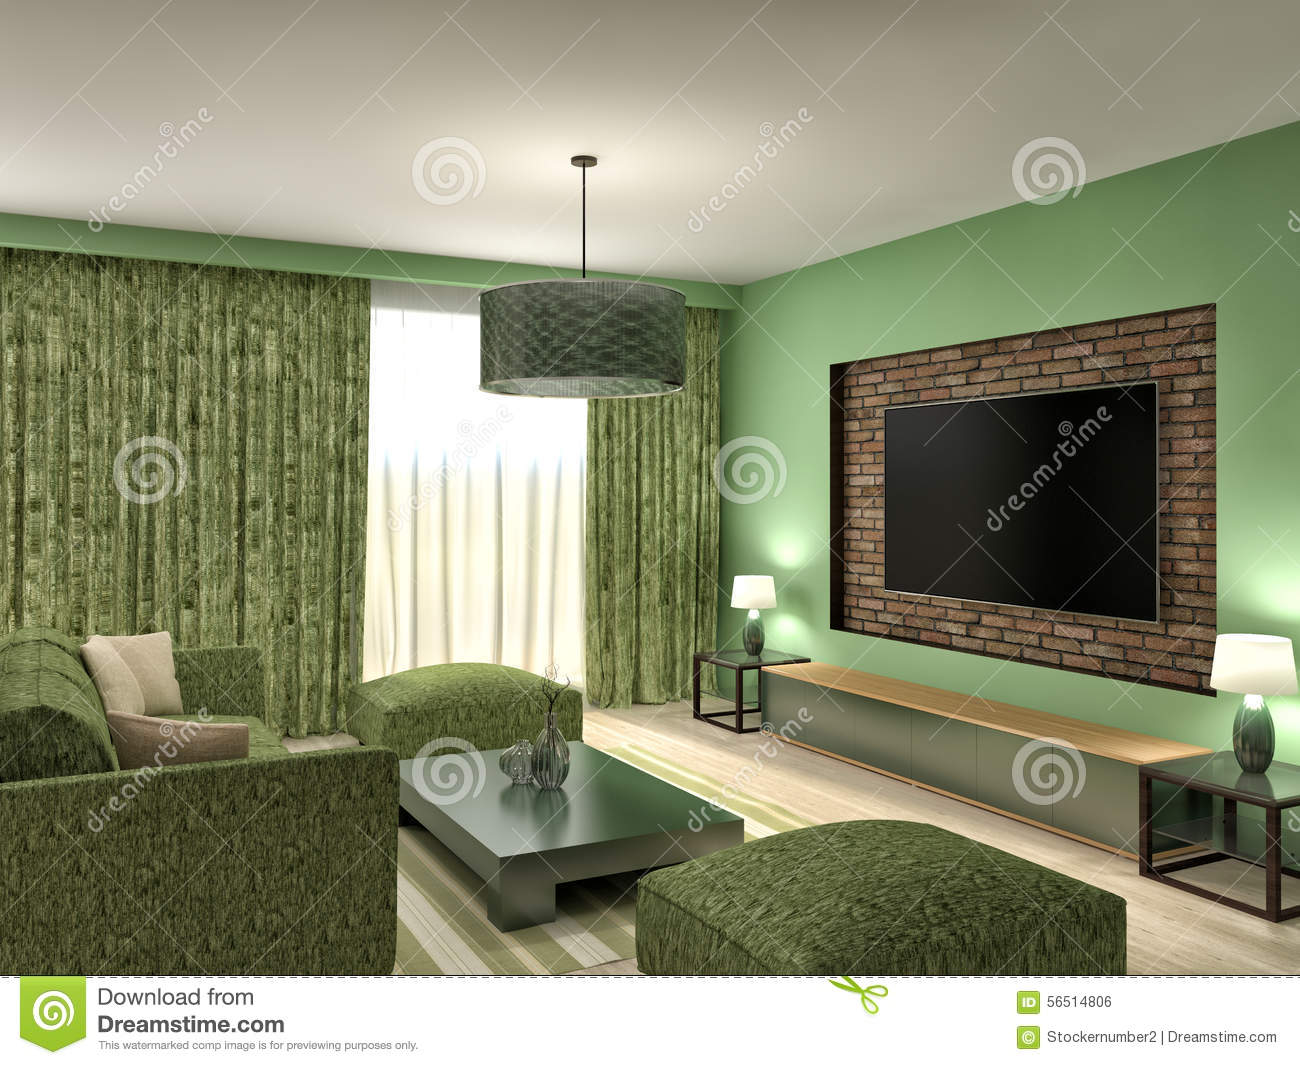 Modern green living room interior design 3d illustration for Modern living room green